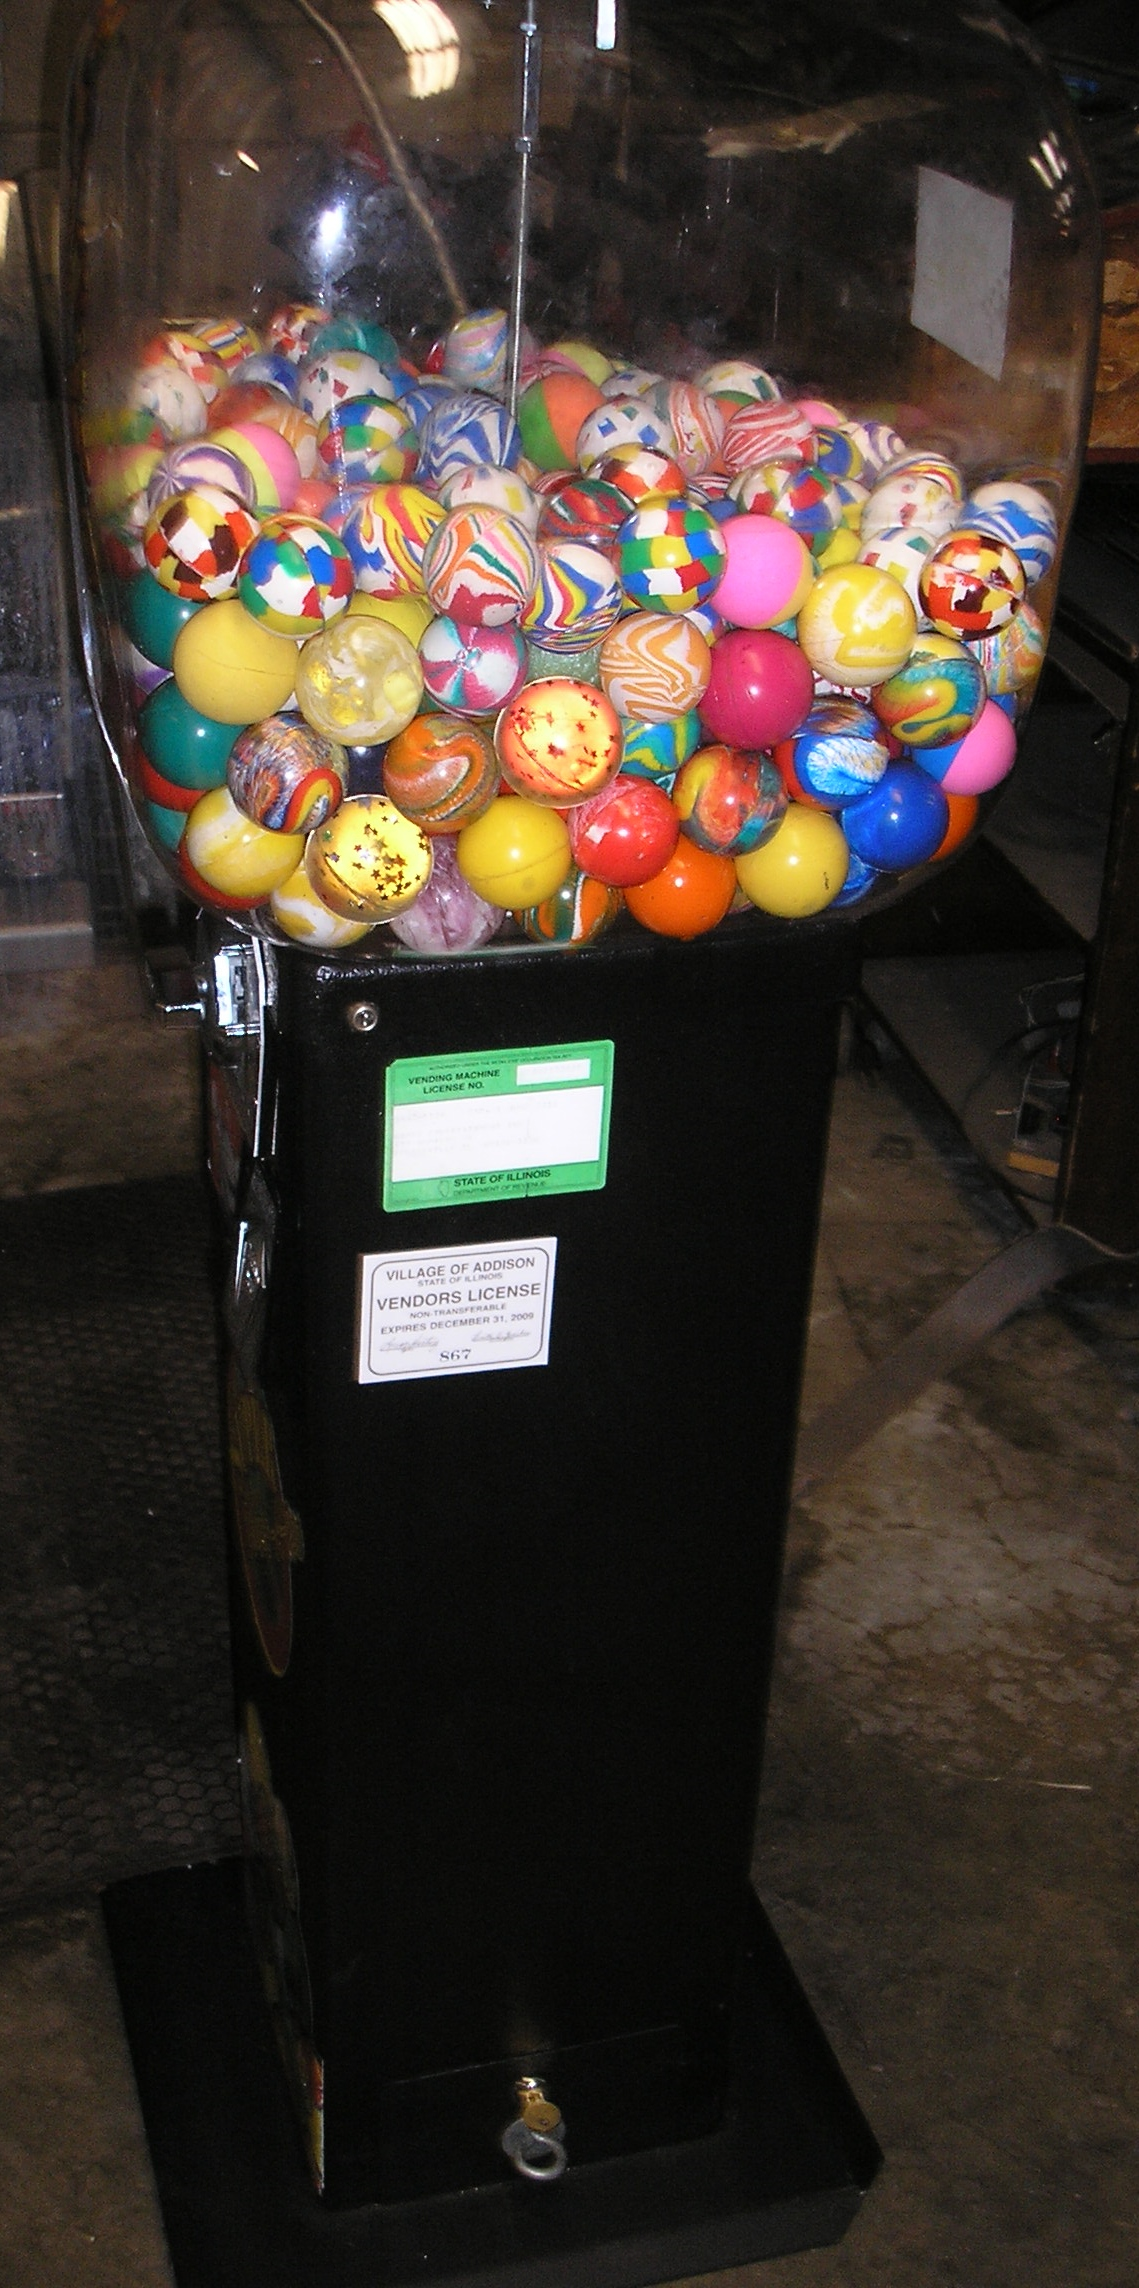 Super Bounce A Roo Merchandiser Arcade Machine Game For